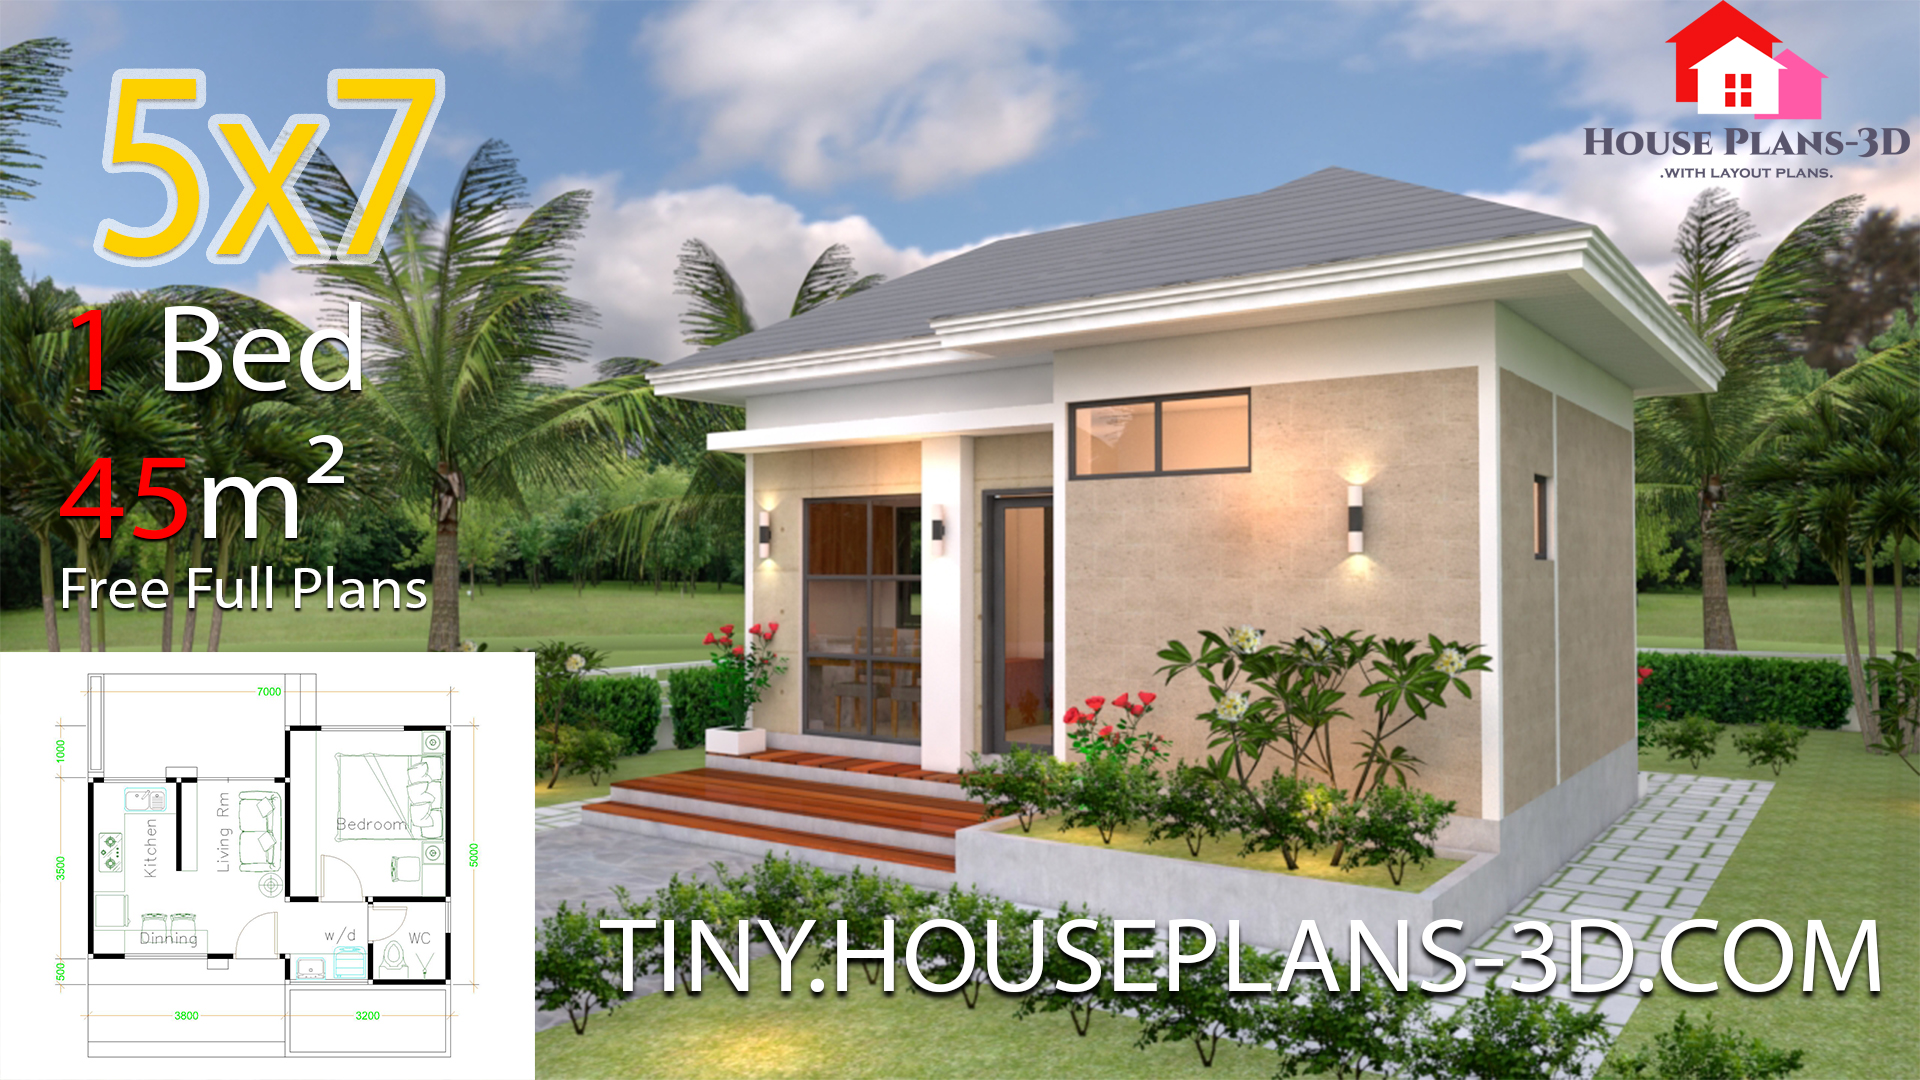 Small House Plans 5x7 With One Bedroom Hip Roof Samphoas Plan